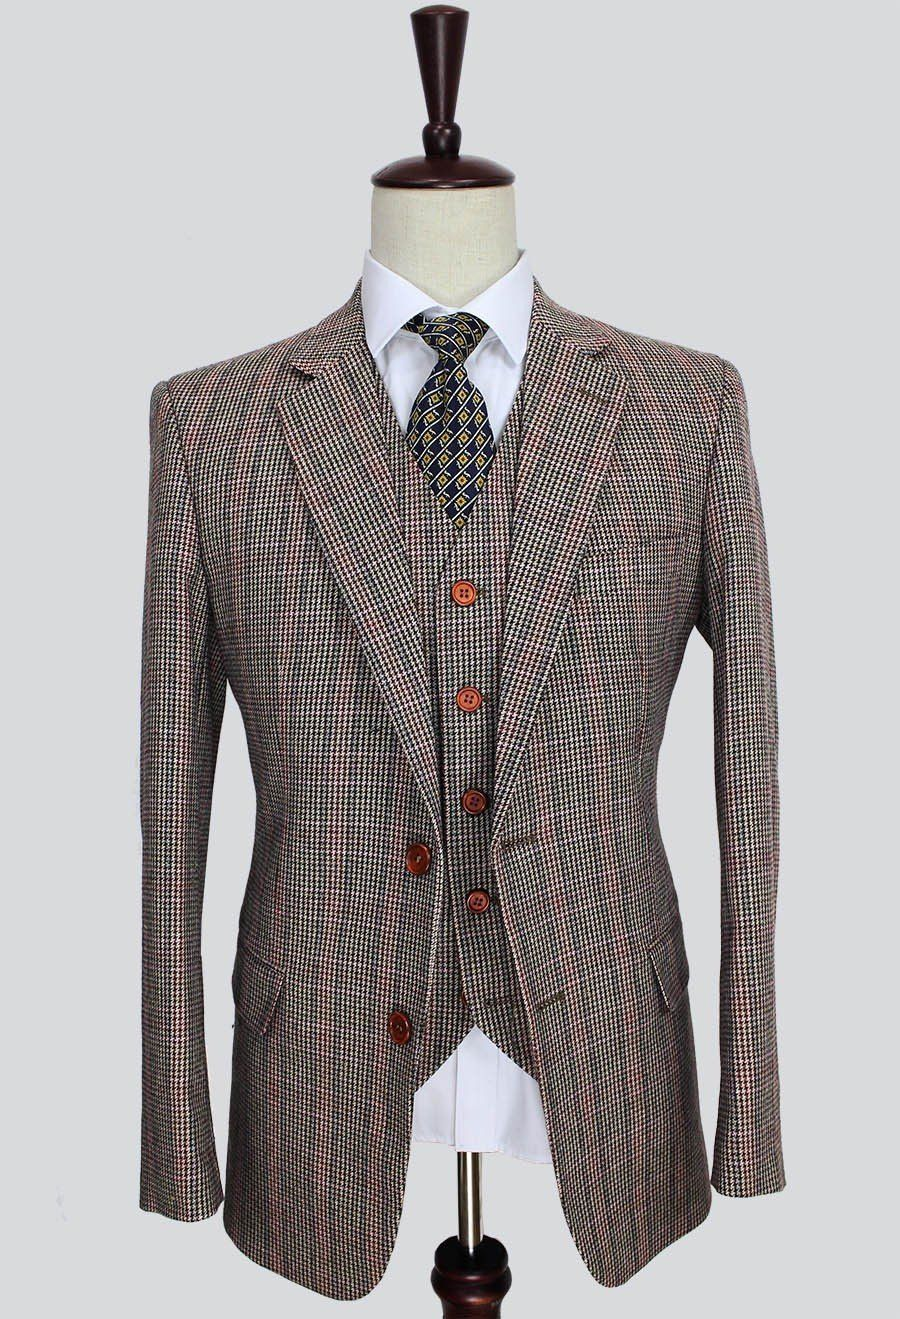 Quality brown classic woolen tweed suit mensu formal wear tailor